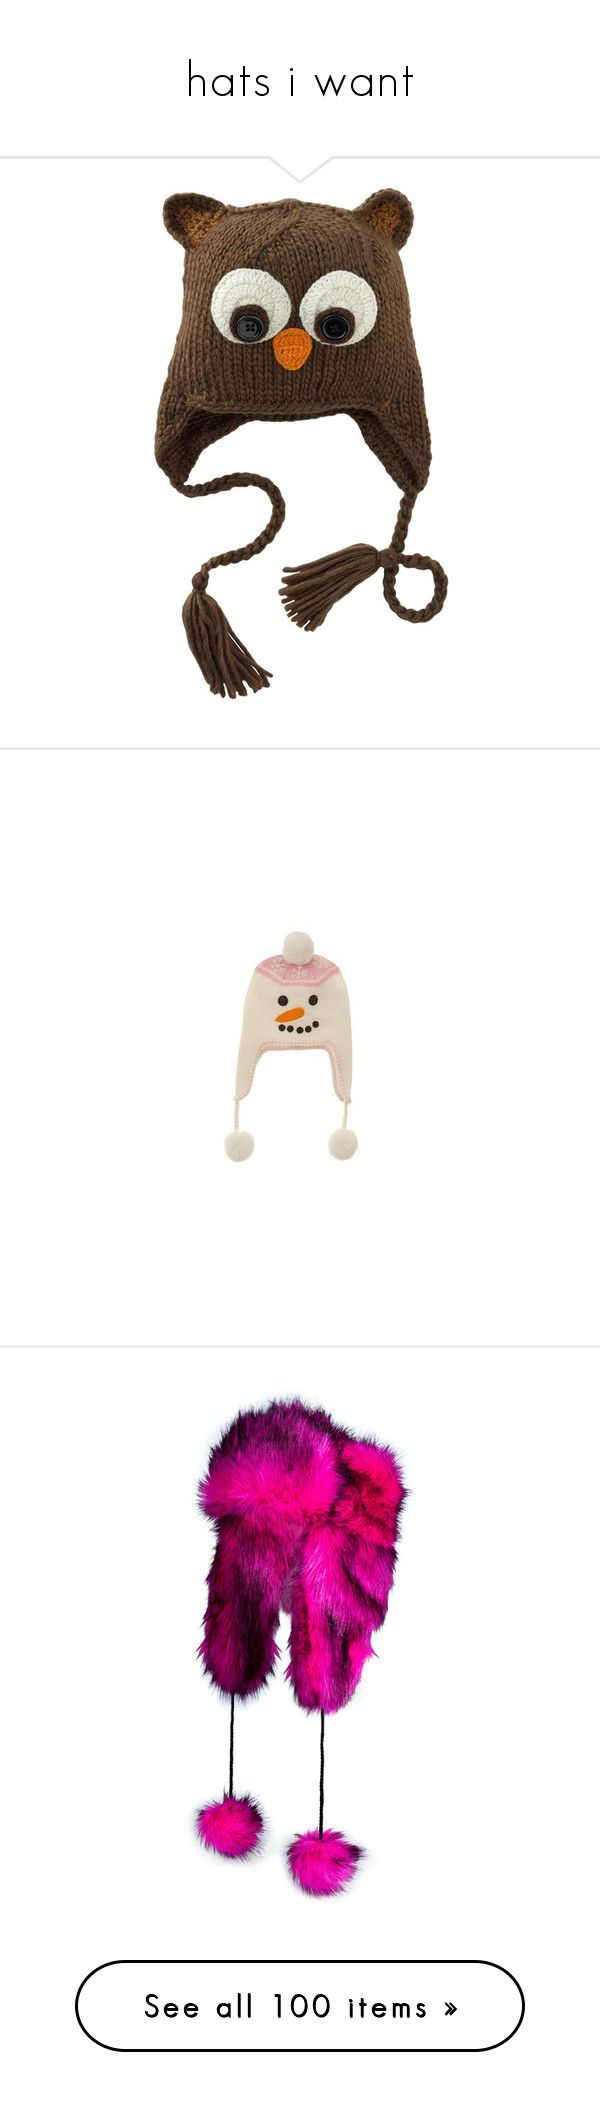 """""""hats i want"""" by jayhorror ❤ liked on Polyvore featuring accessories, hats, animals, owl, owl hat, trapper hats, animal hat, animal trapper hats, headwear and pink pom pom hat"""